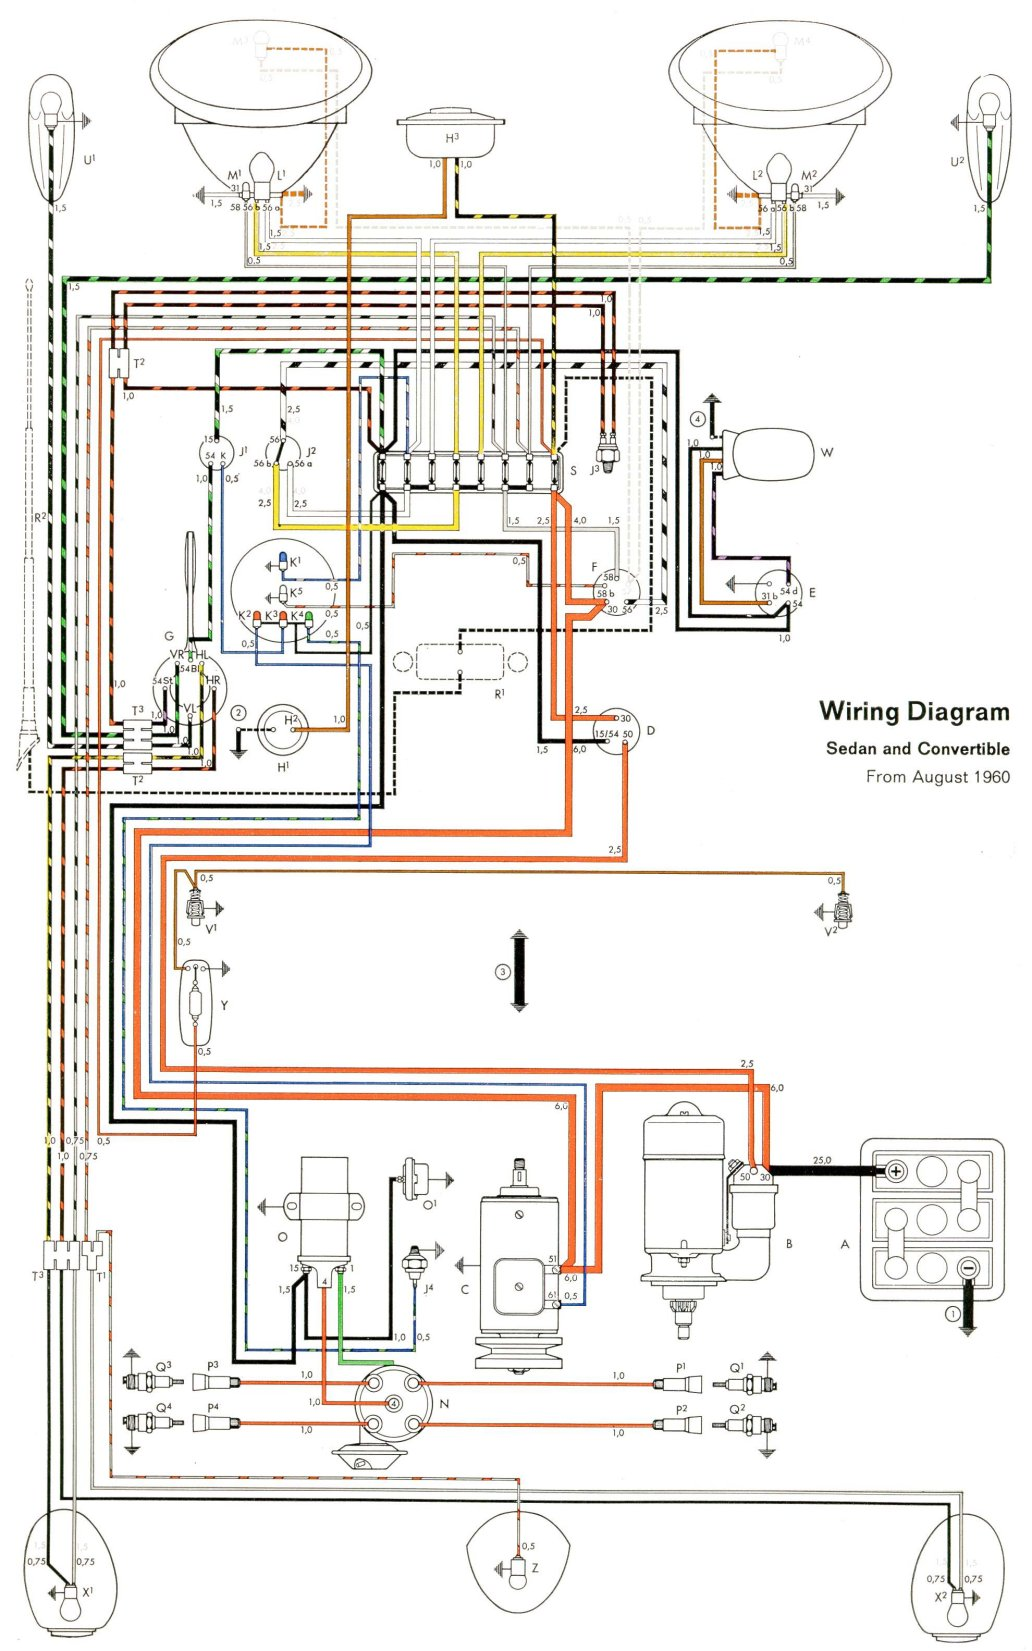 wiring diagram vw bettle wiring data rh unroutine co 67 VW Beetle Wiring Diagram 67 VW Beetle Wiring Diagram